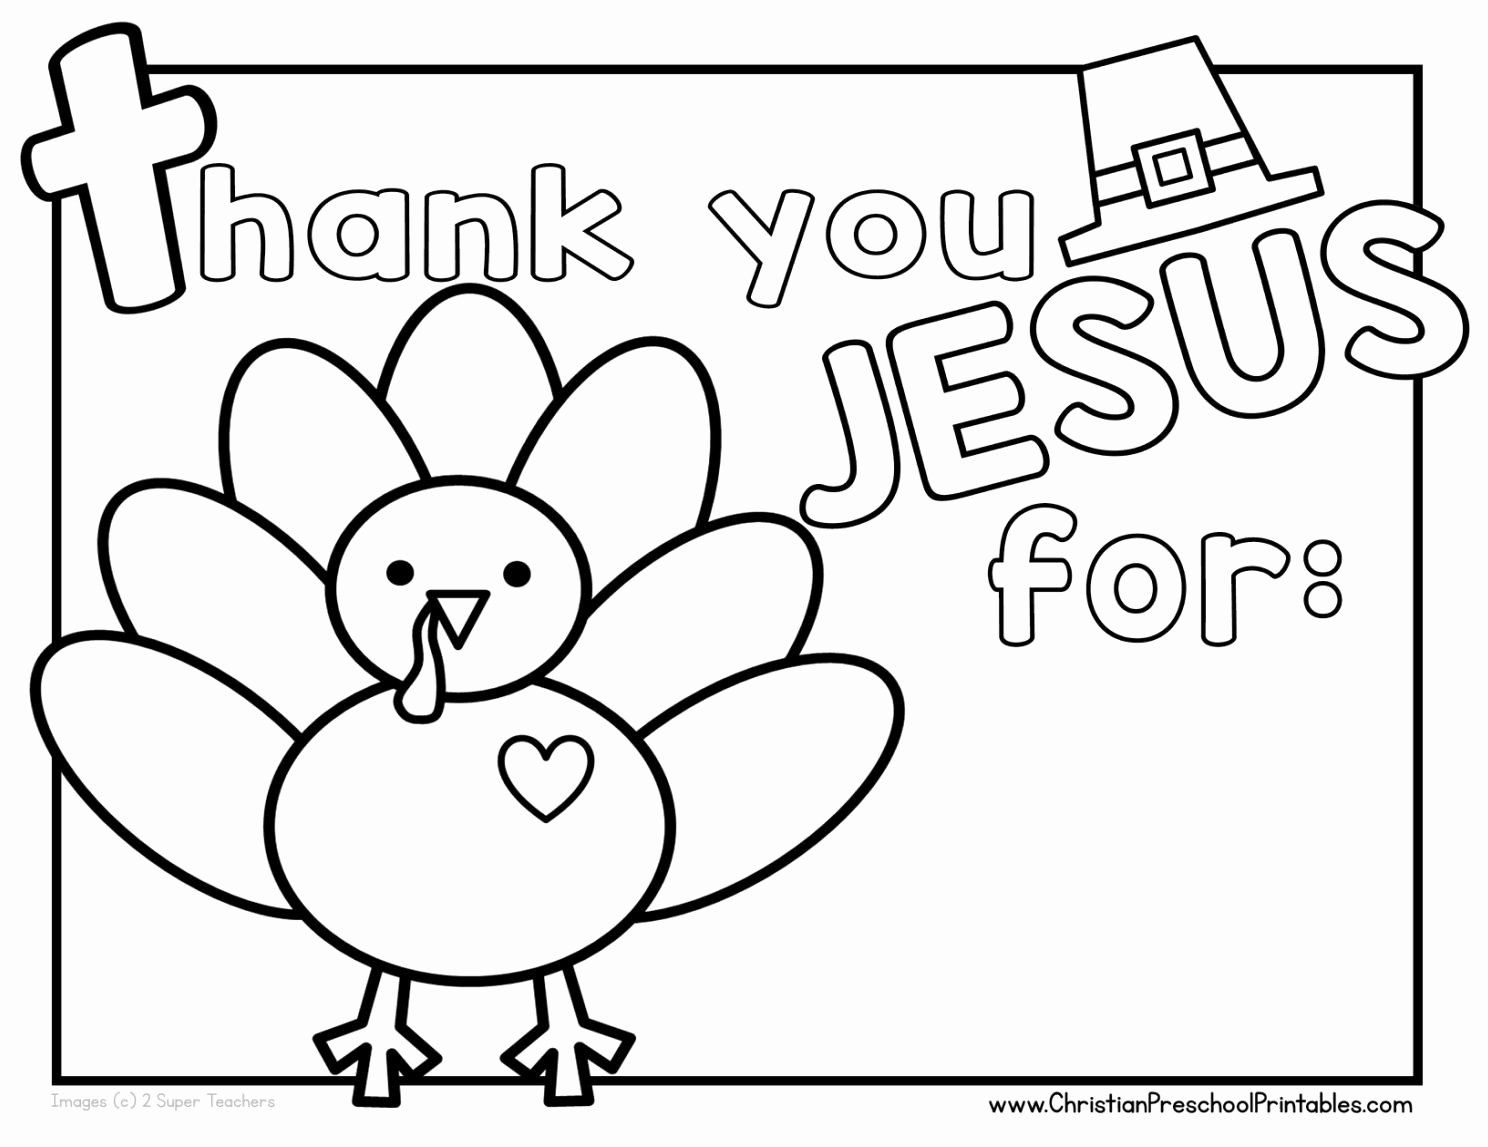 Thanksgiving Coloring Sheets For Toddlers Best Of Coloring Fantastic Sunday School Coloring Sheets Anak Warna Reli [ 1147 x 1488 Pixel ]